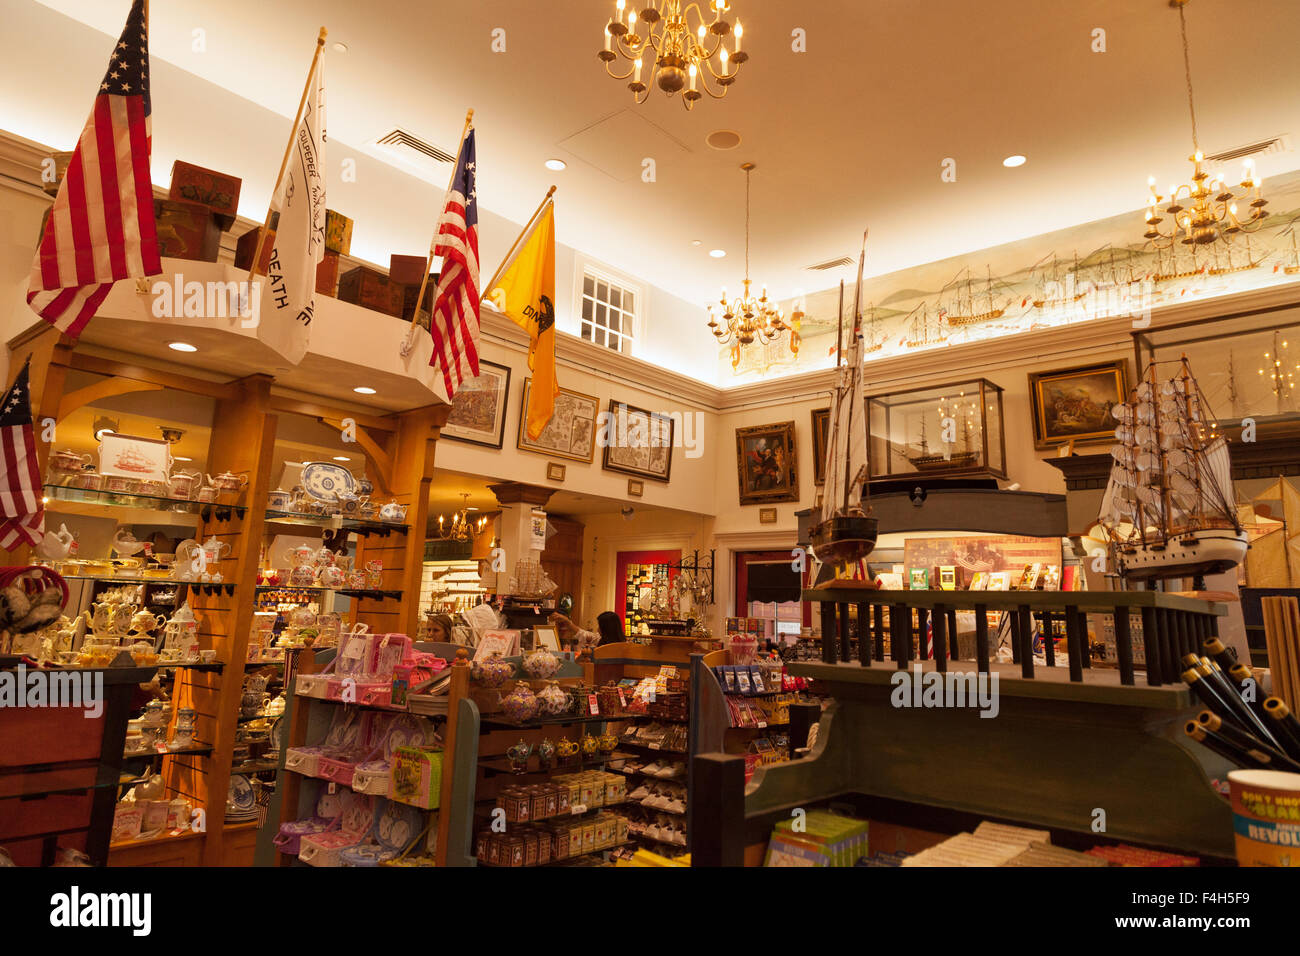 The Gift Shop Interior Boston Tea Party Ships Museum Boston Stock Photo Royalty Free Image